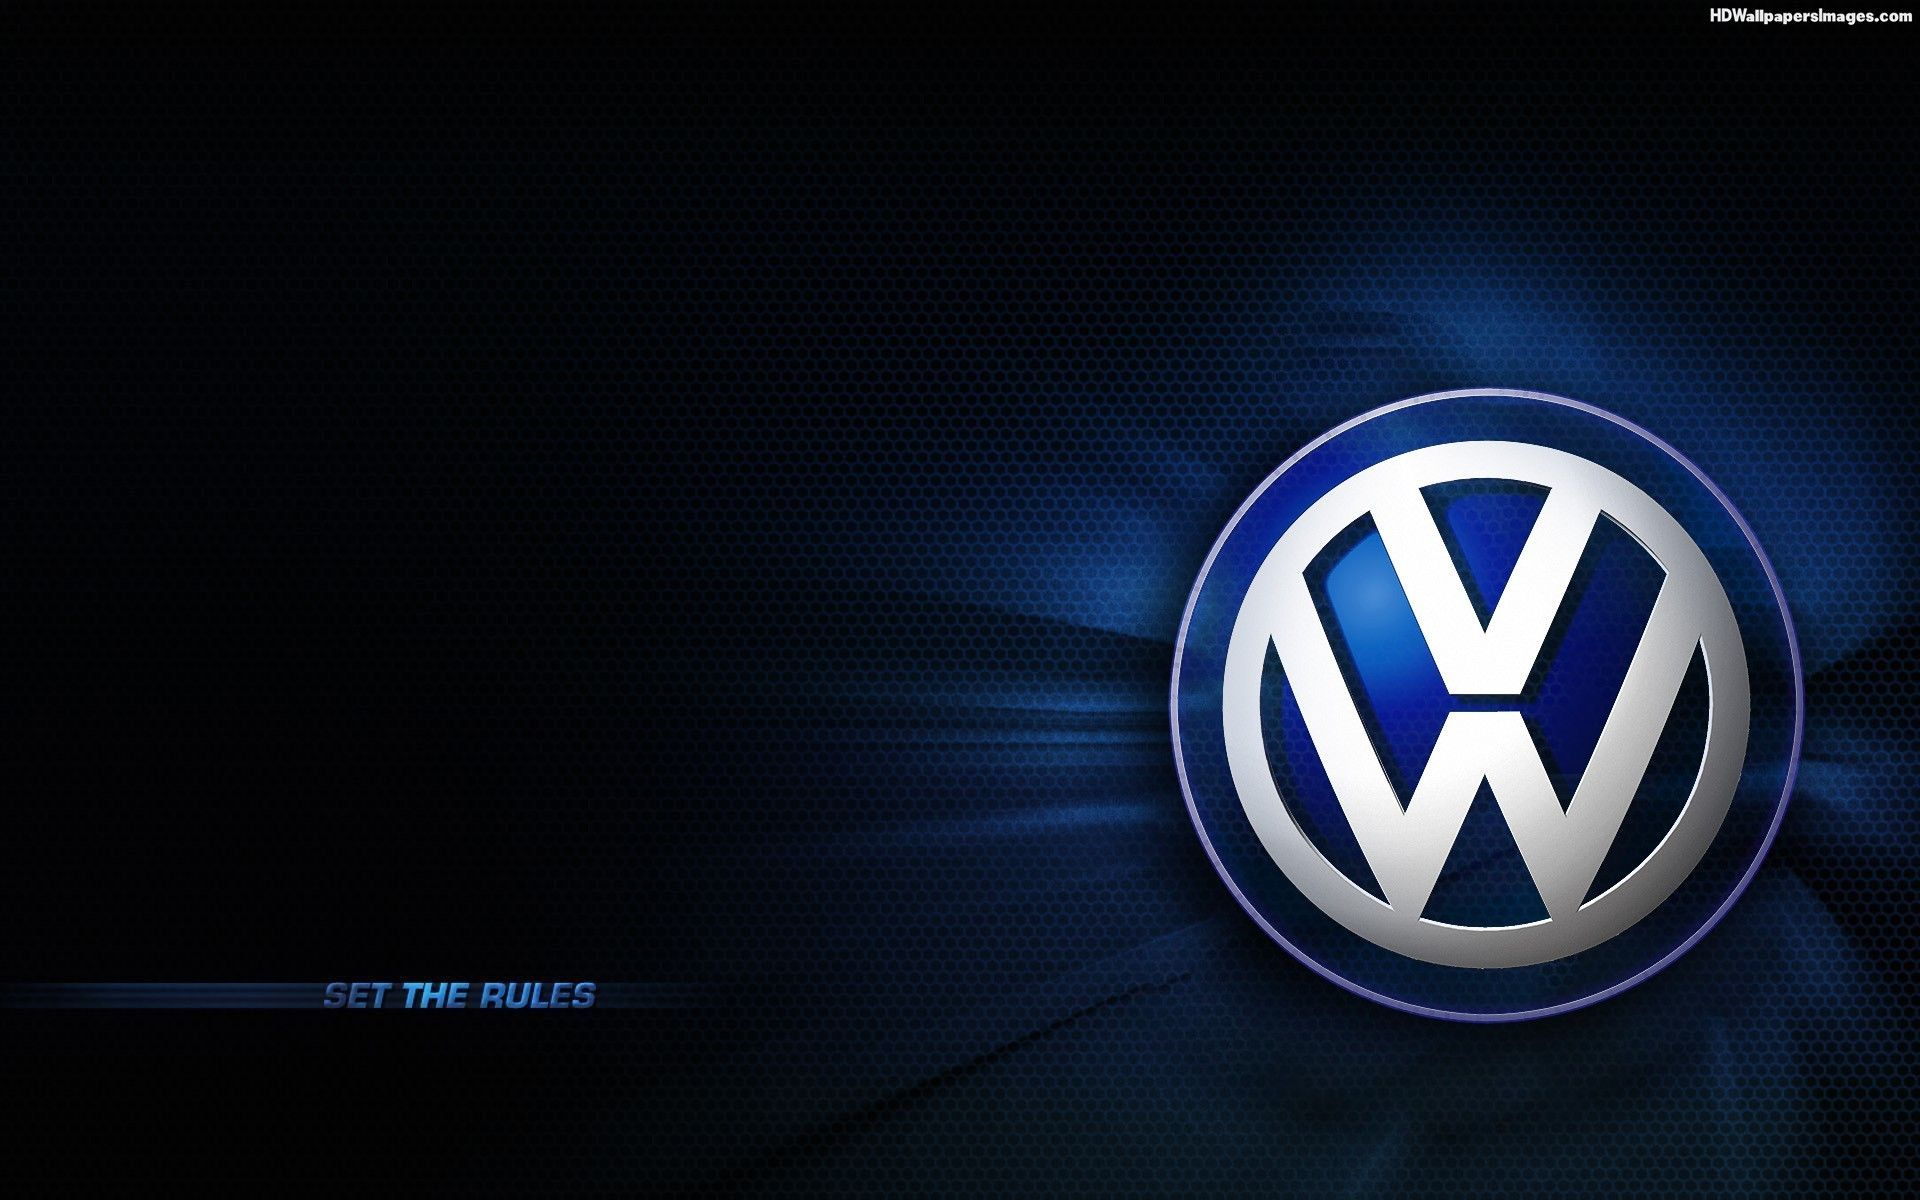 1920x1200 VW Logo Wallpapers (60+ images)